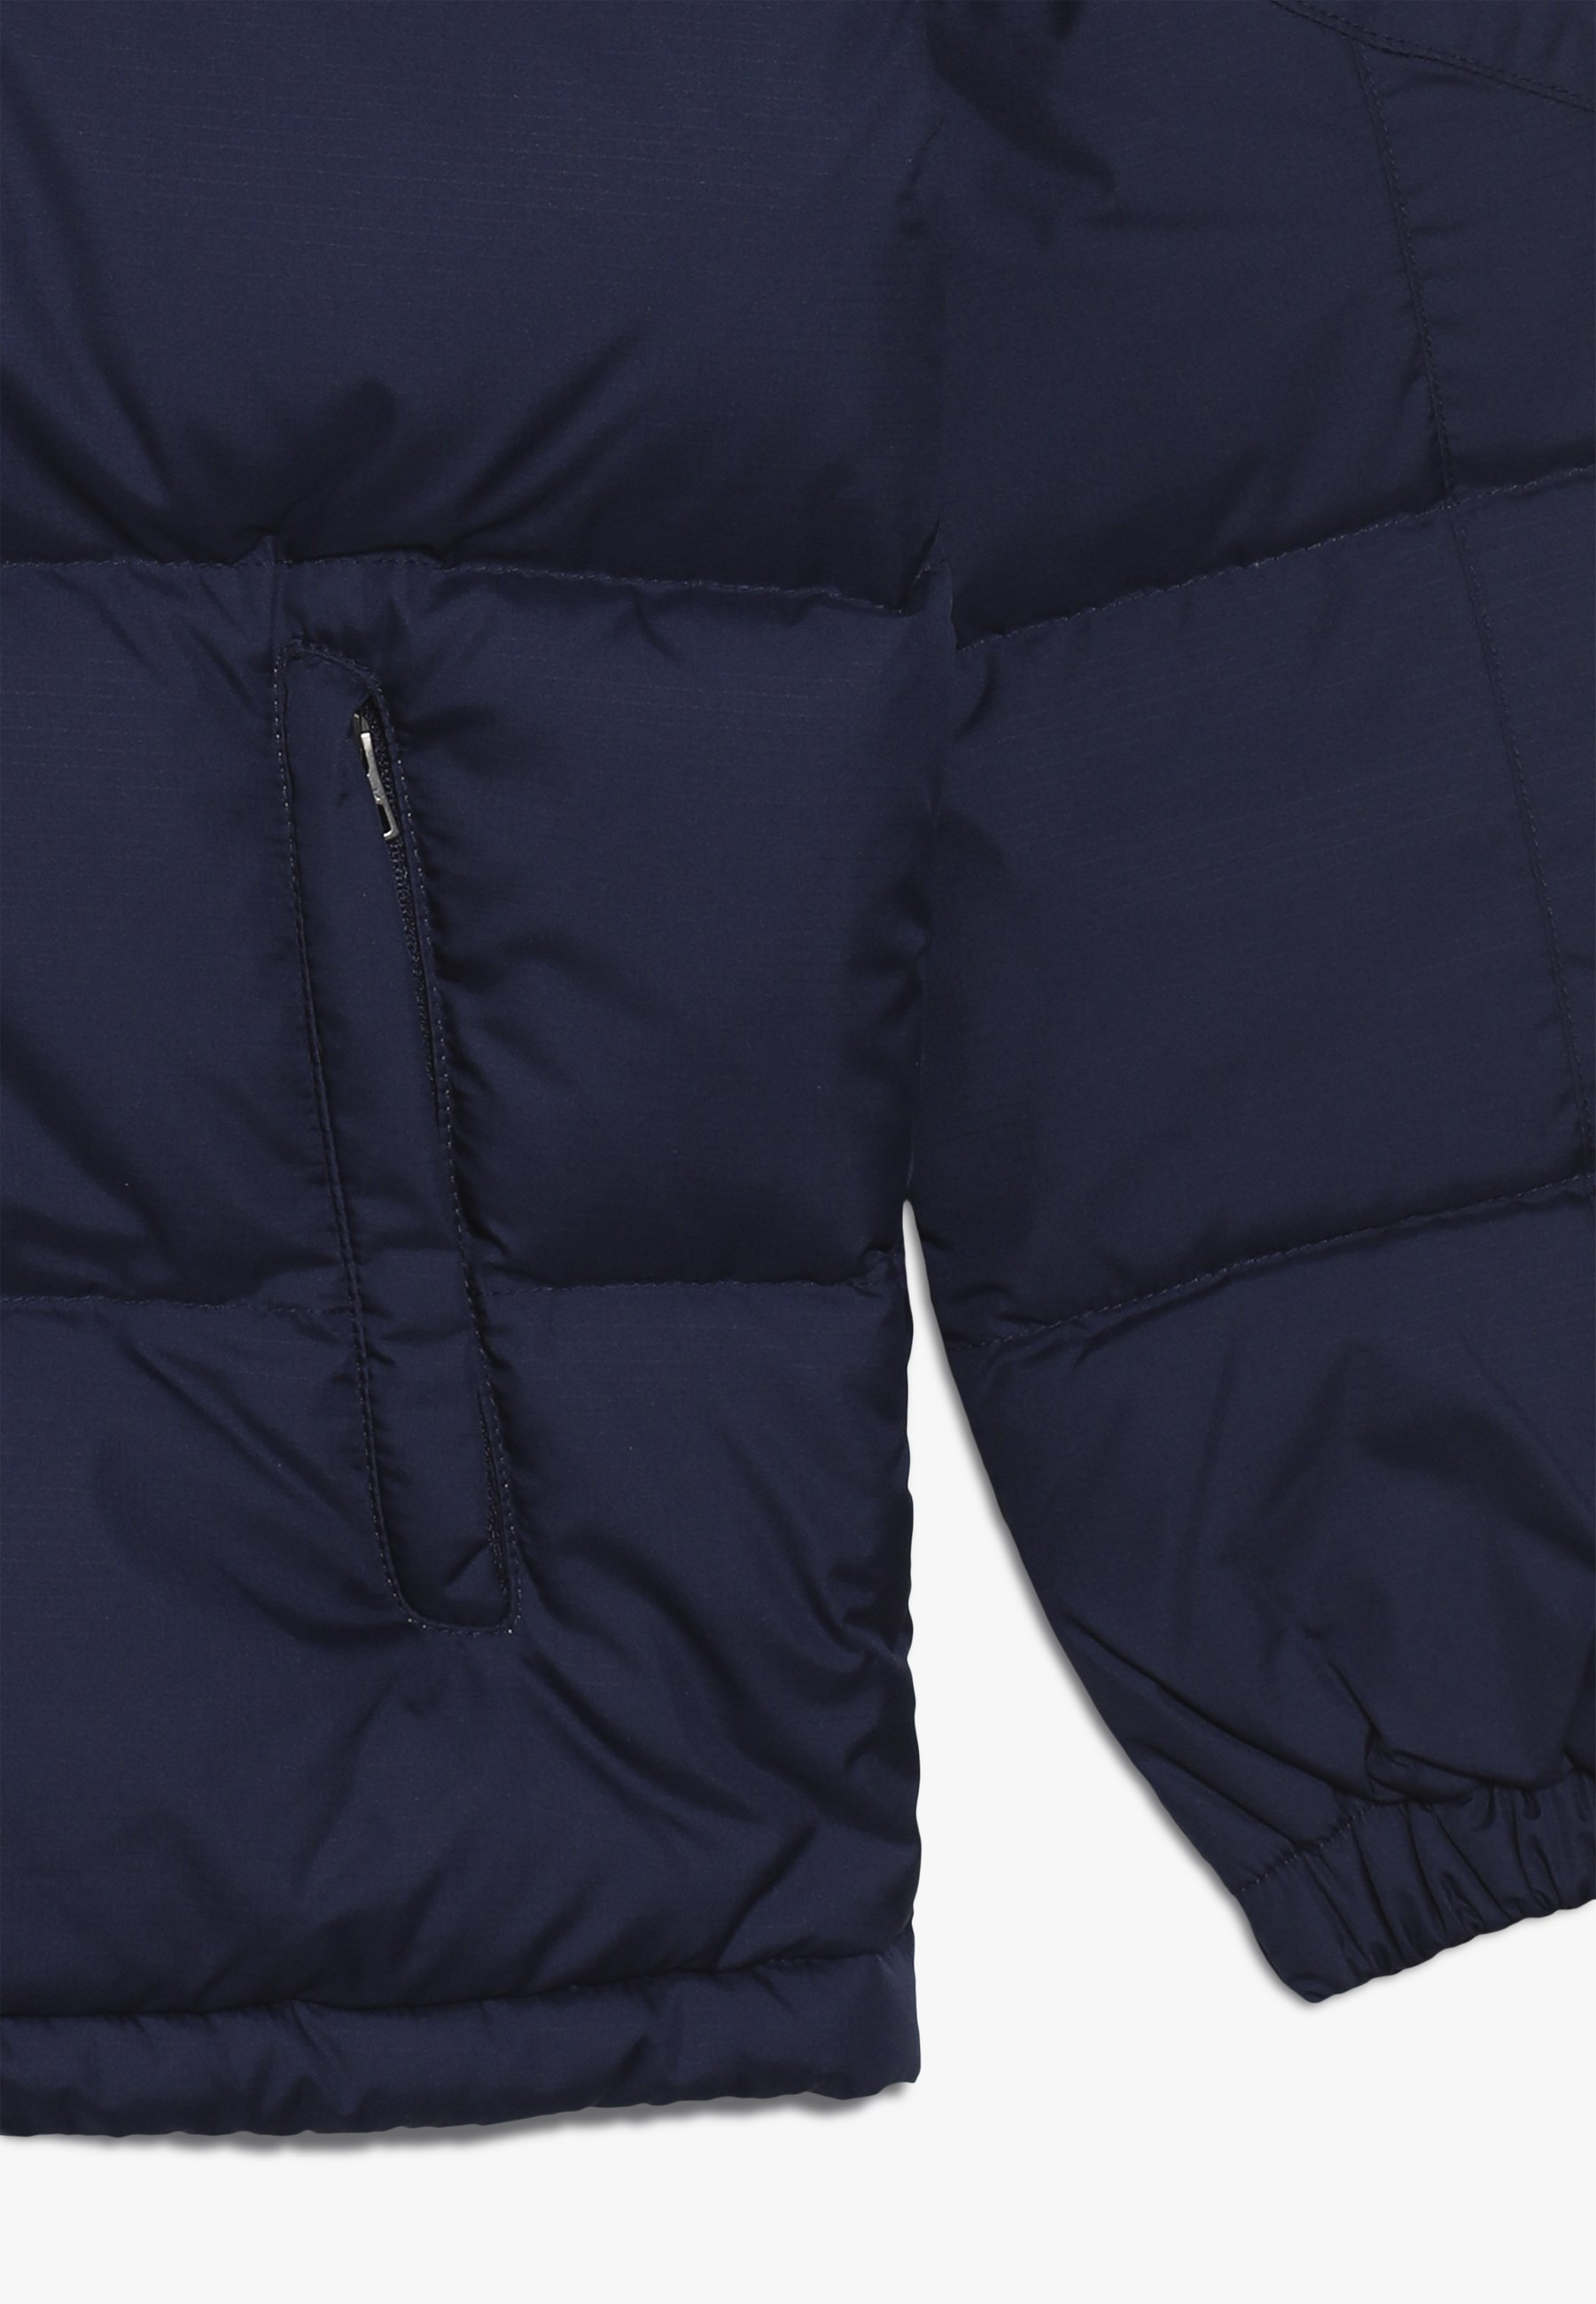 OUTERWEAR JACKET Dunjacka french navy